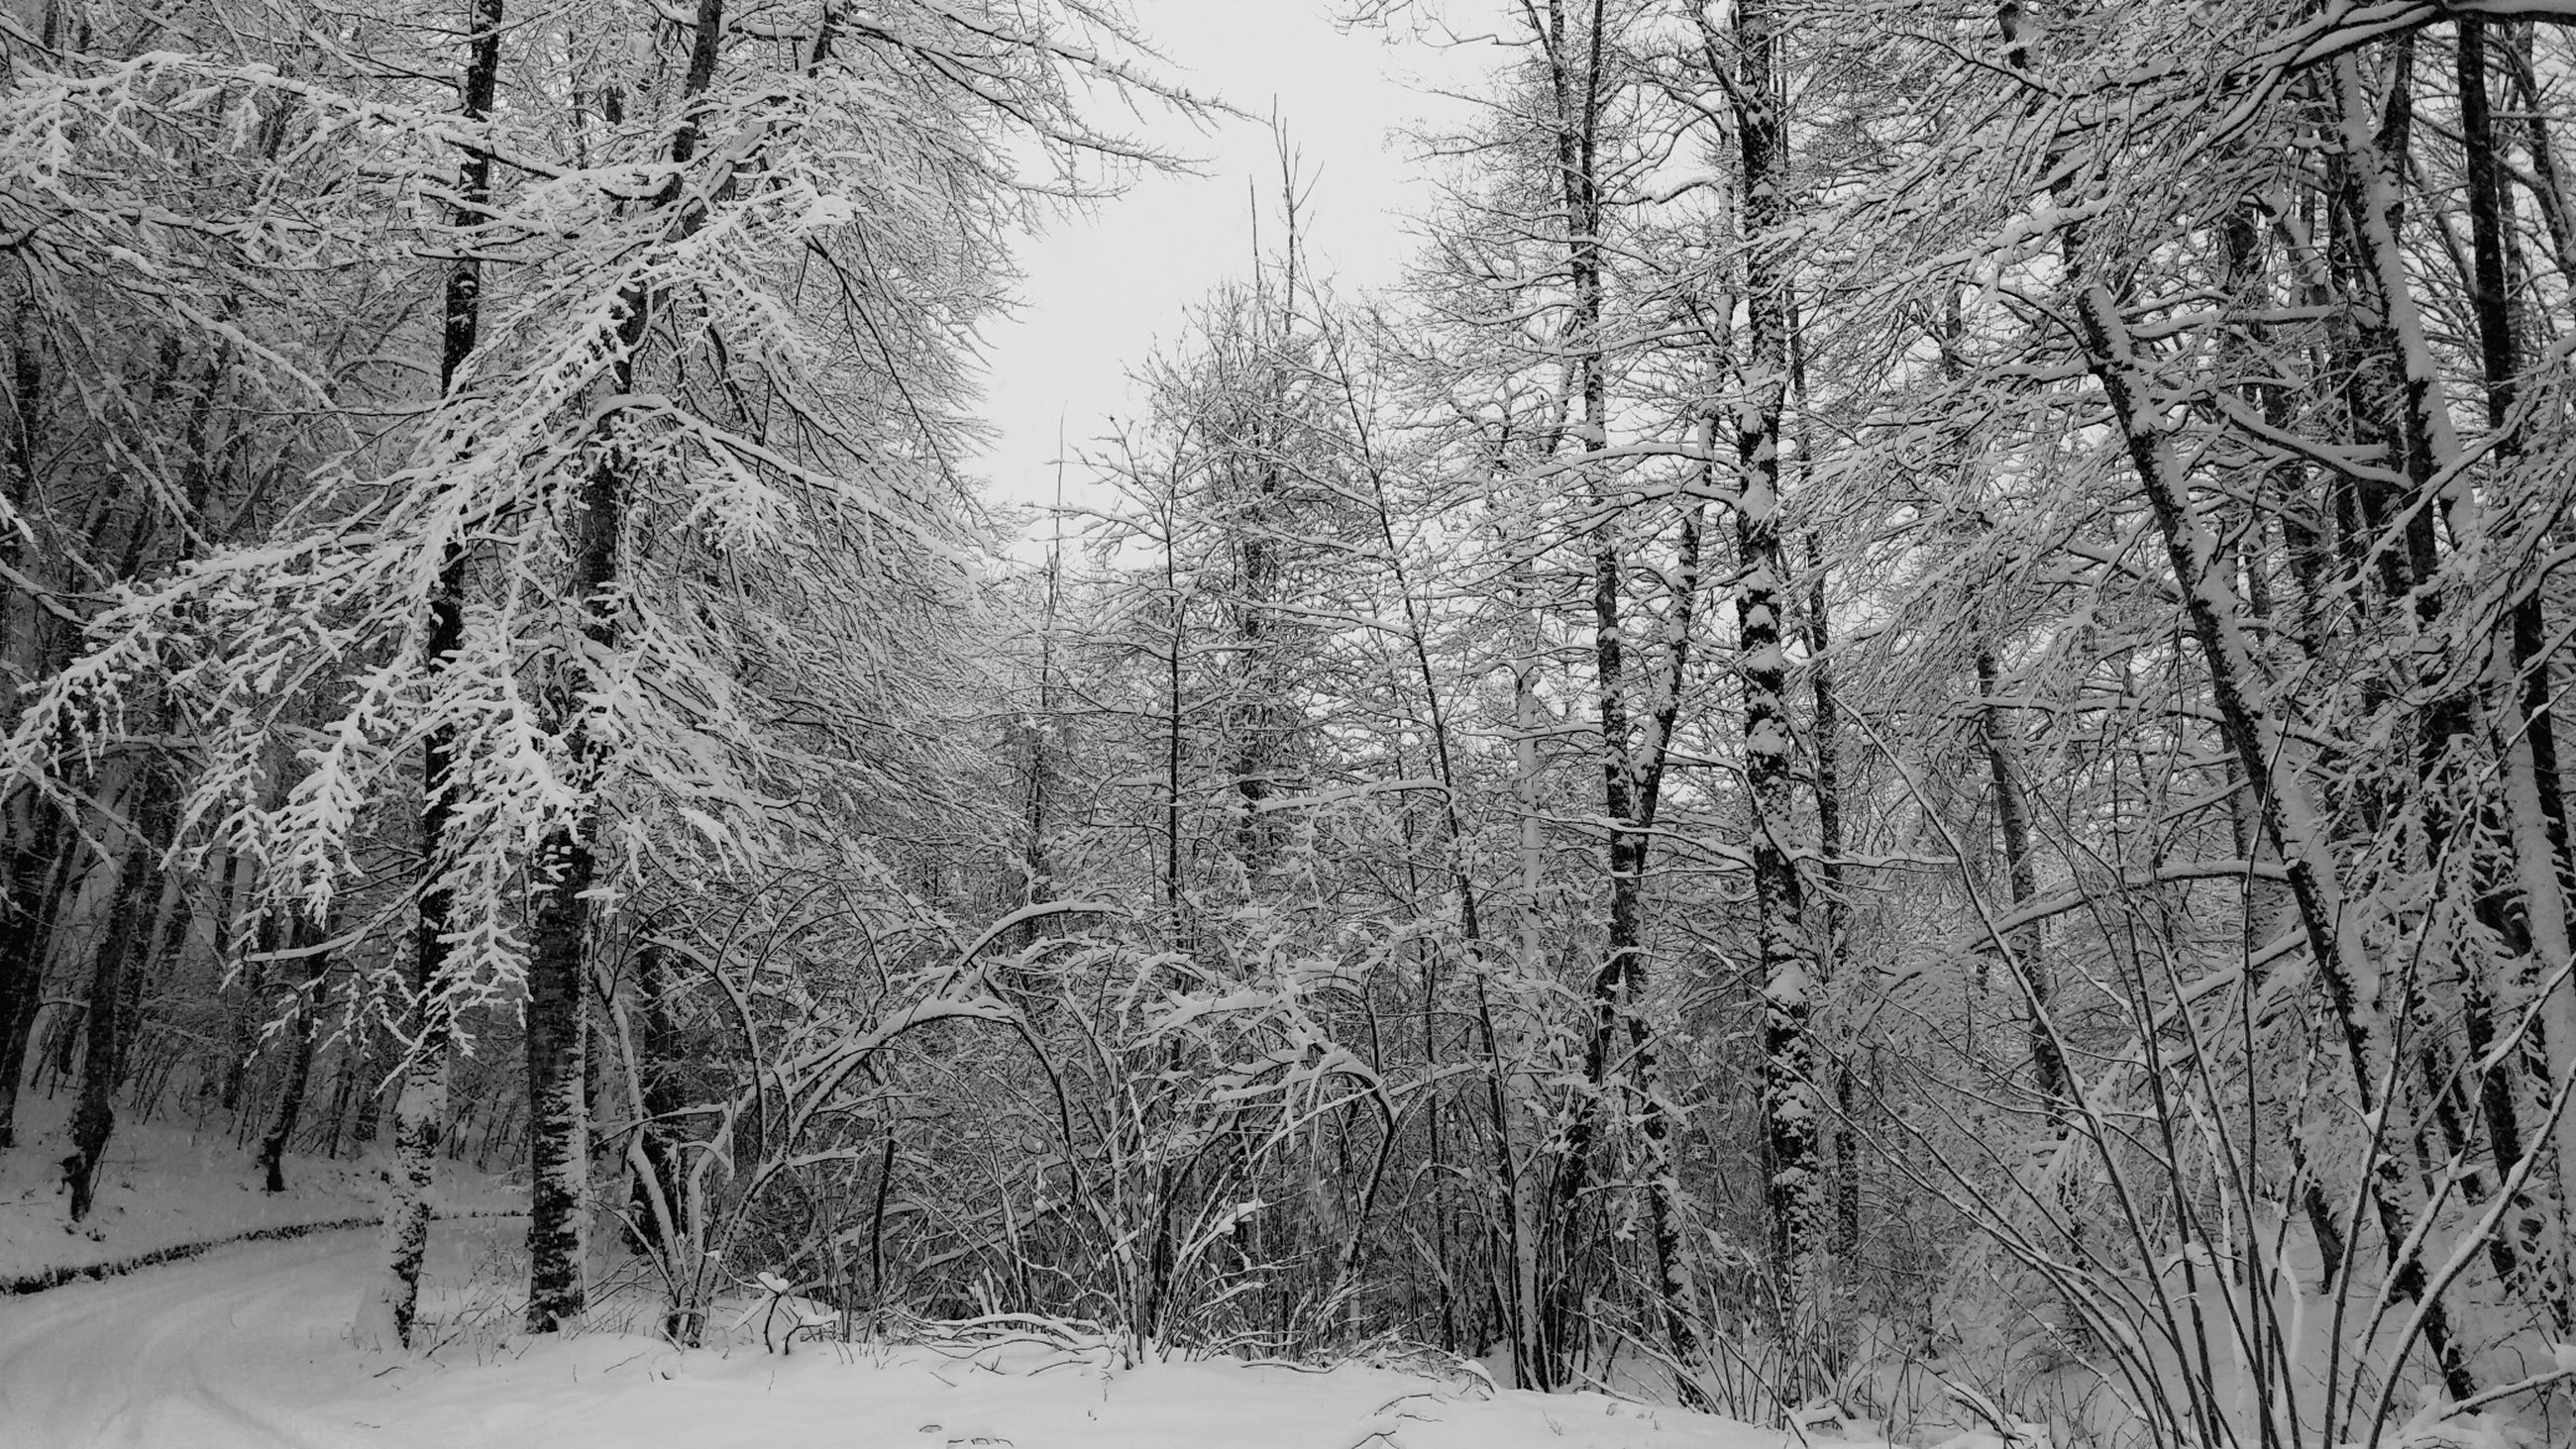 snow, winter, cold temperature, tree, season, weather, tranquility, tranquil scene, nature, bare tree, covering, beauty in nature, frozen, forest, scenics, branch, landscape, tree trunk, woodland, non-urban scene